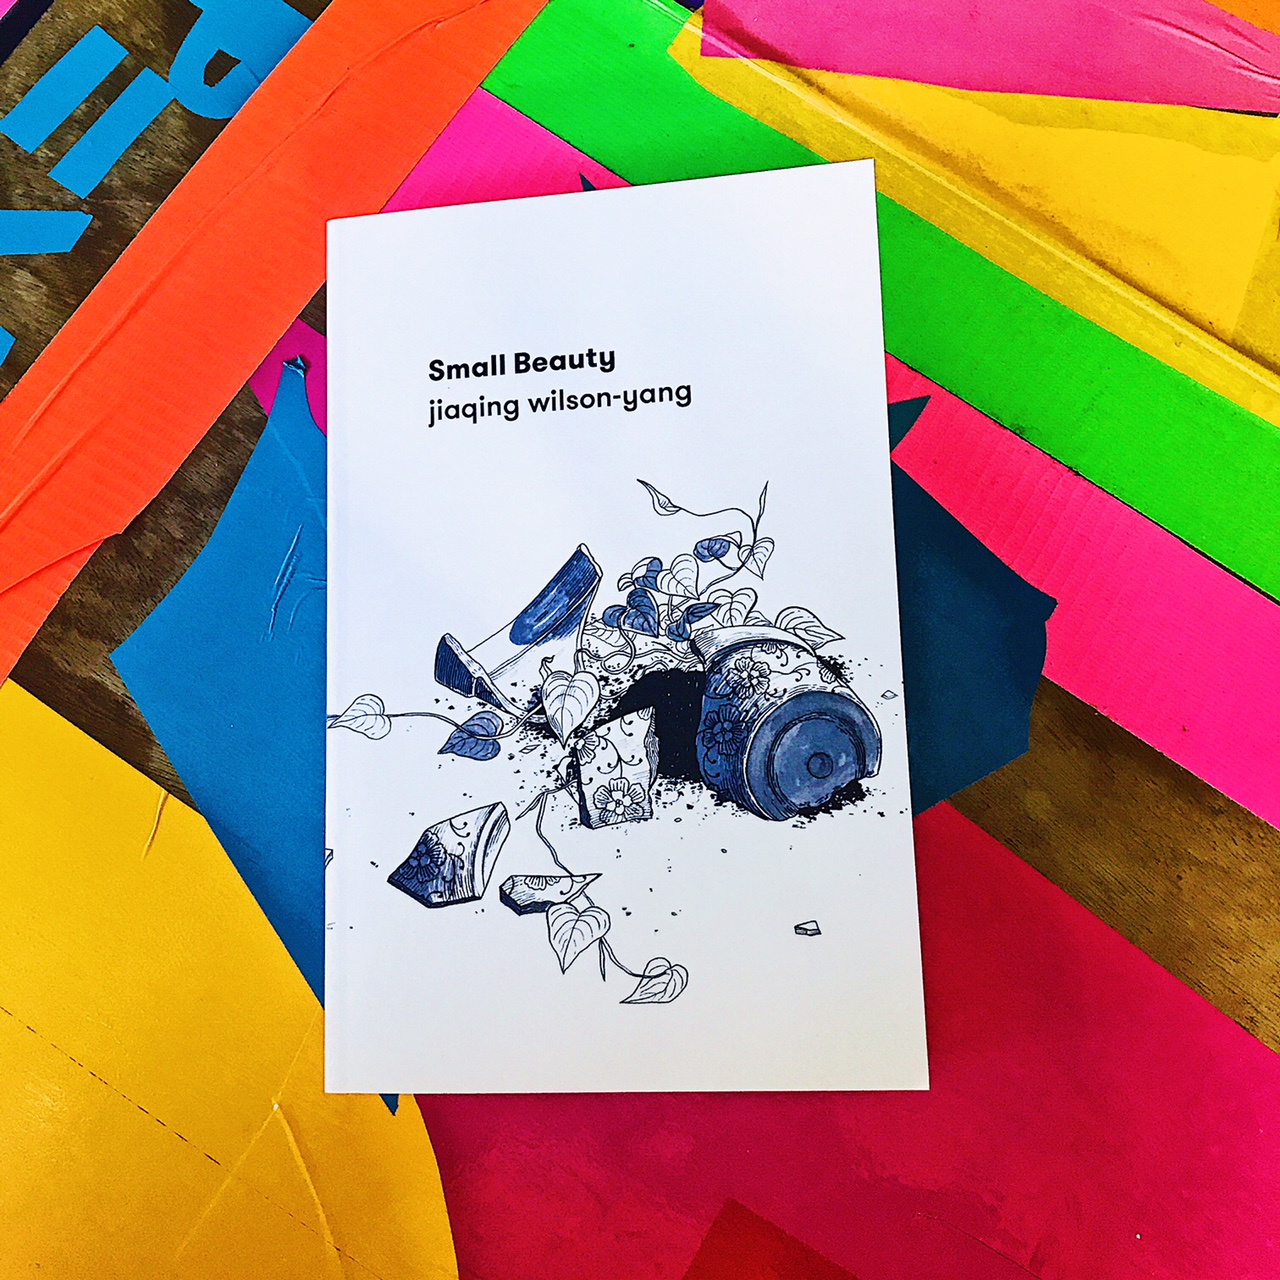 Out now:  Small Beauty  by jiaqing wilson-yang